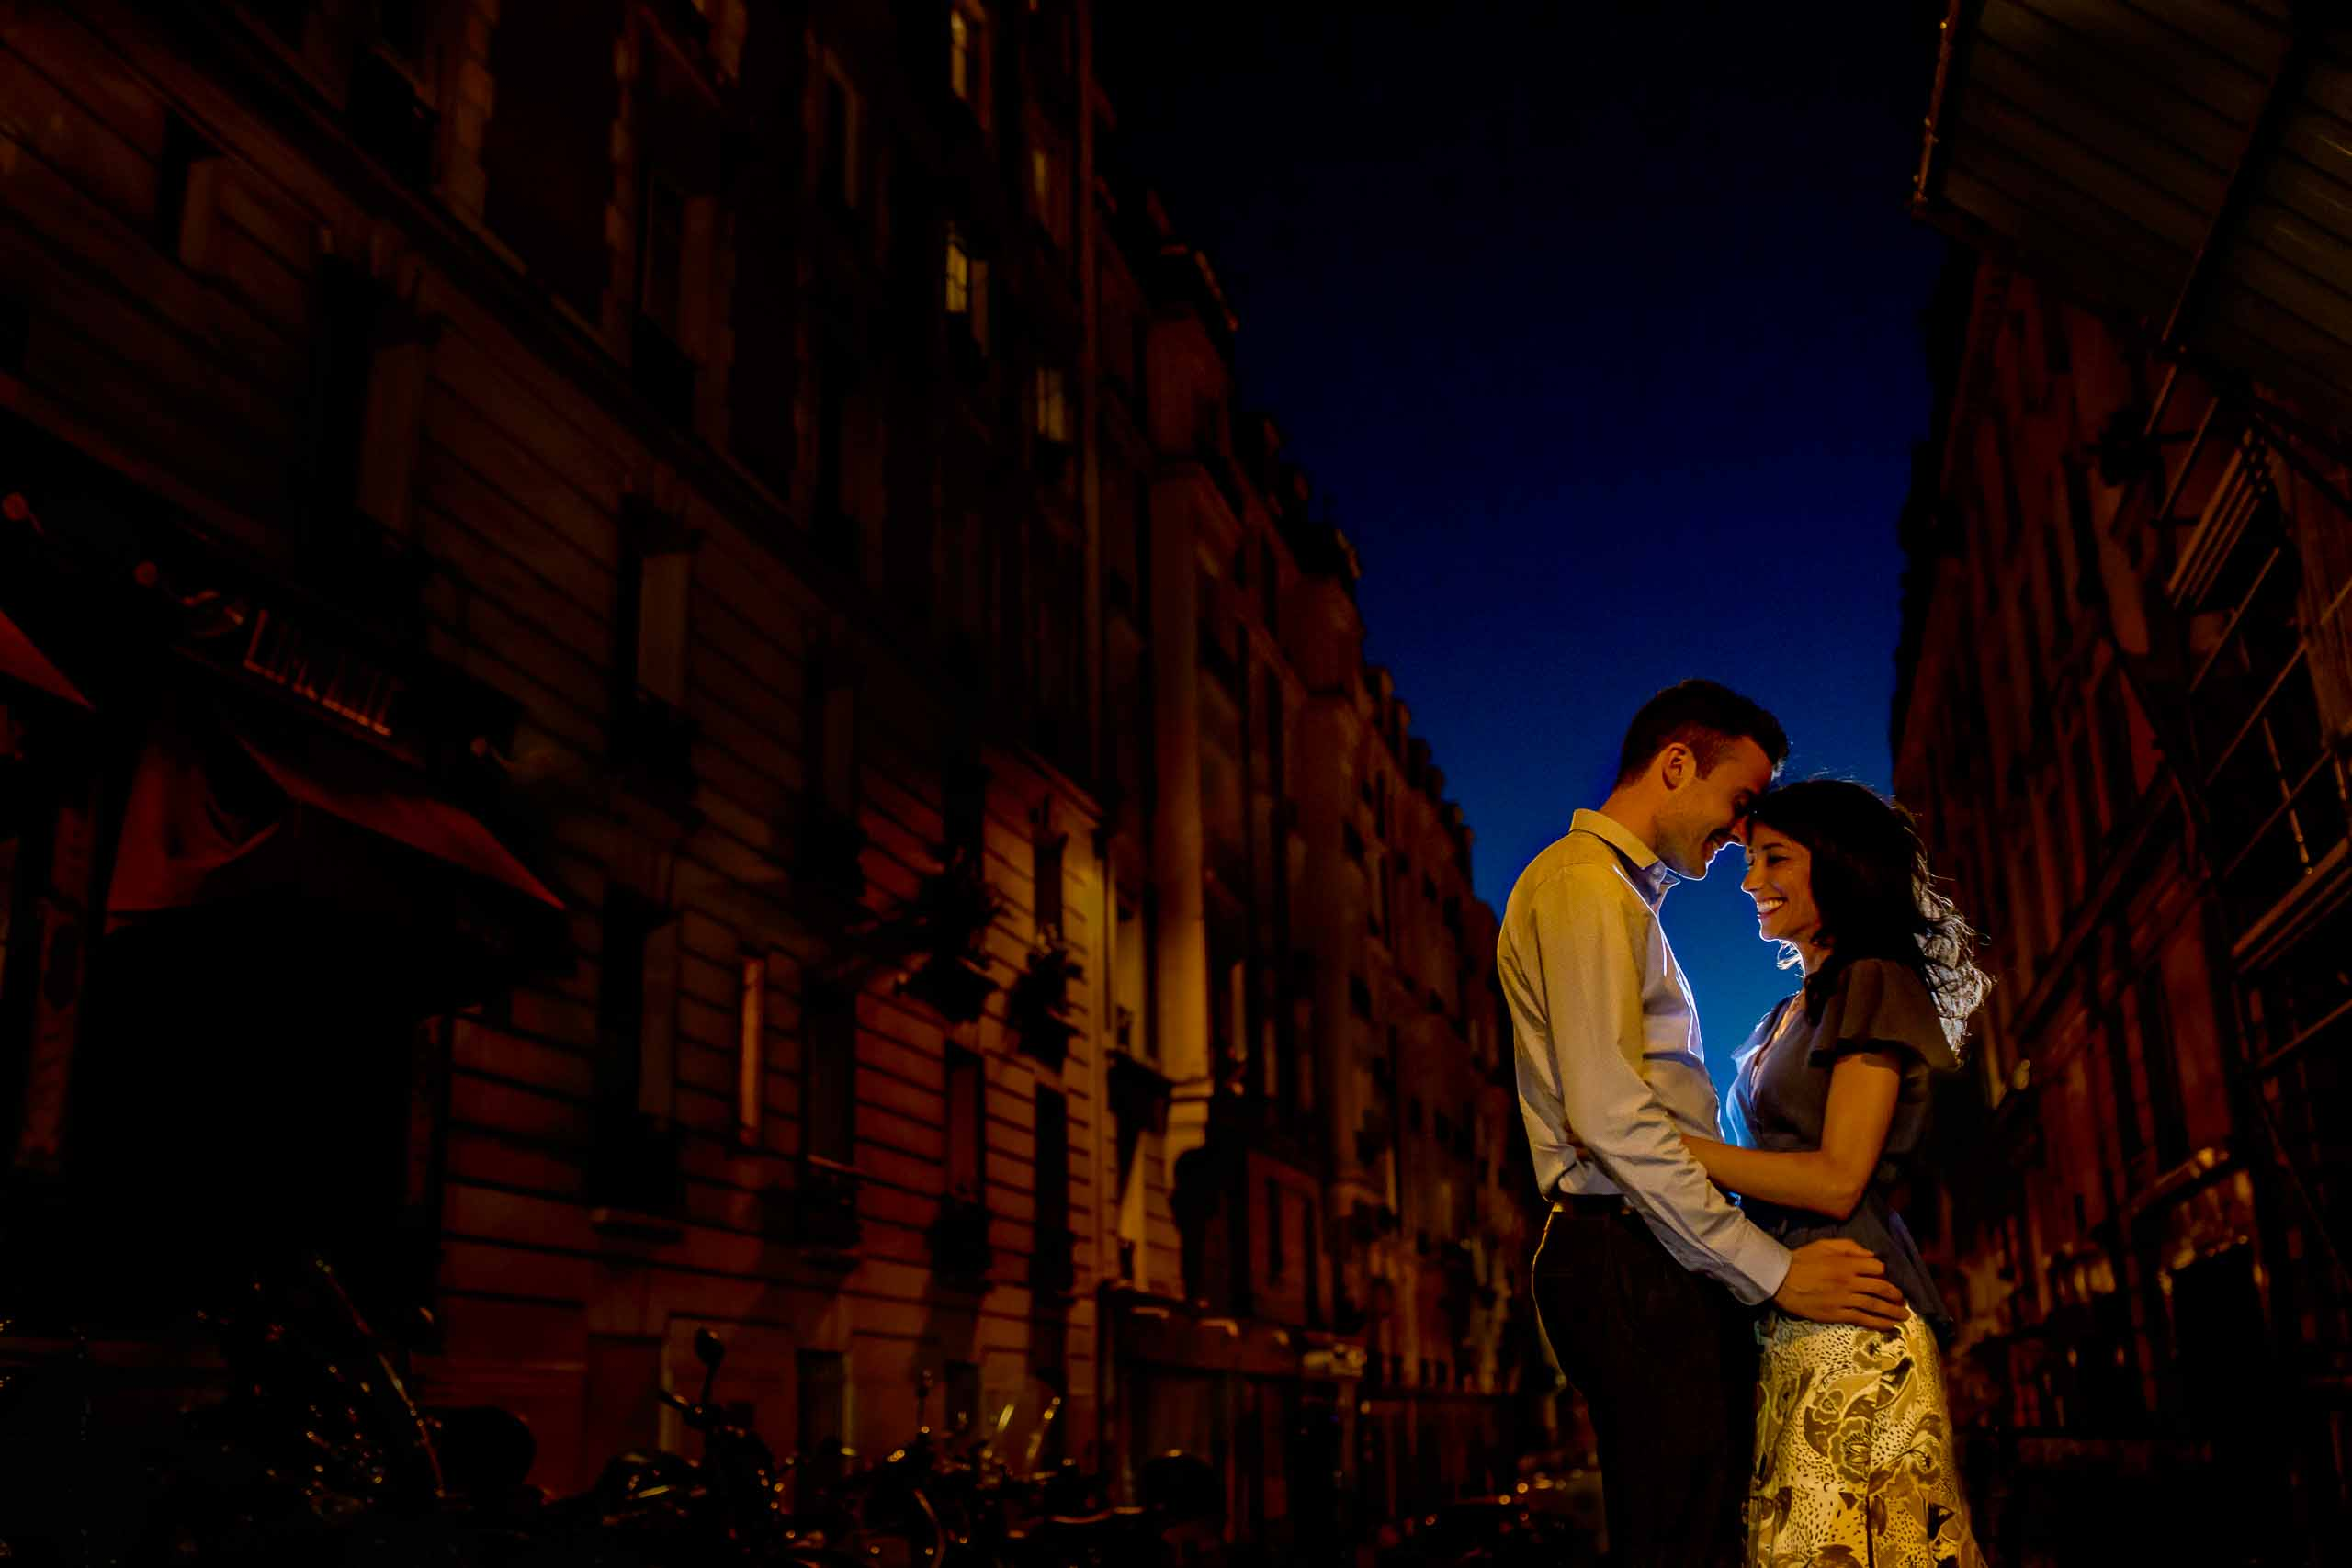 A creative portrait of a couple embracing in back streets during their Paris engagement photo session